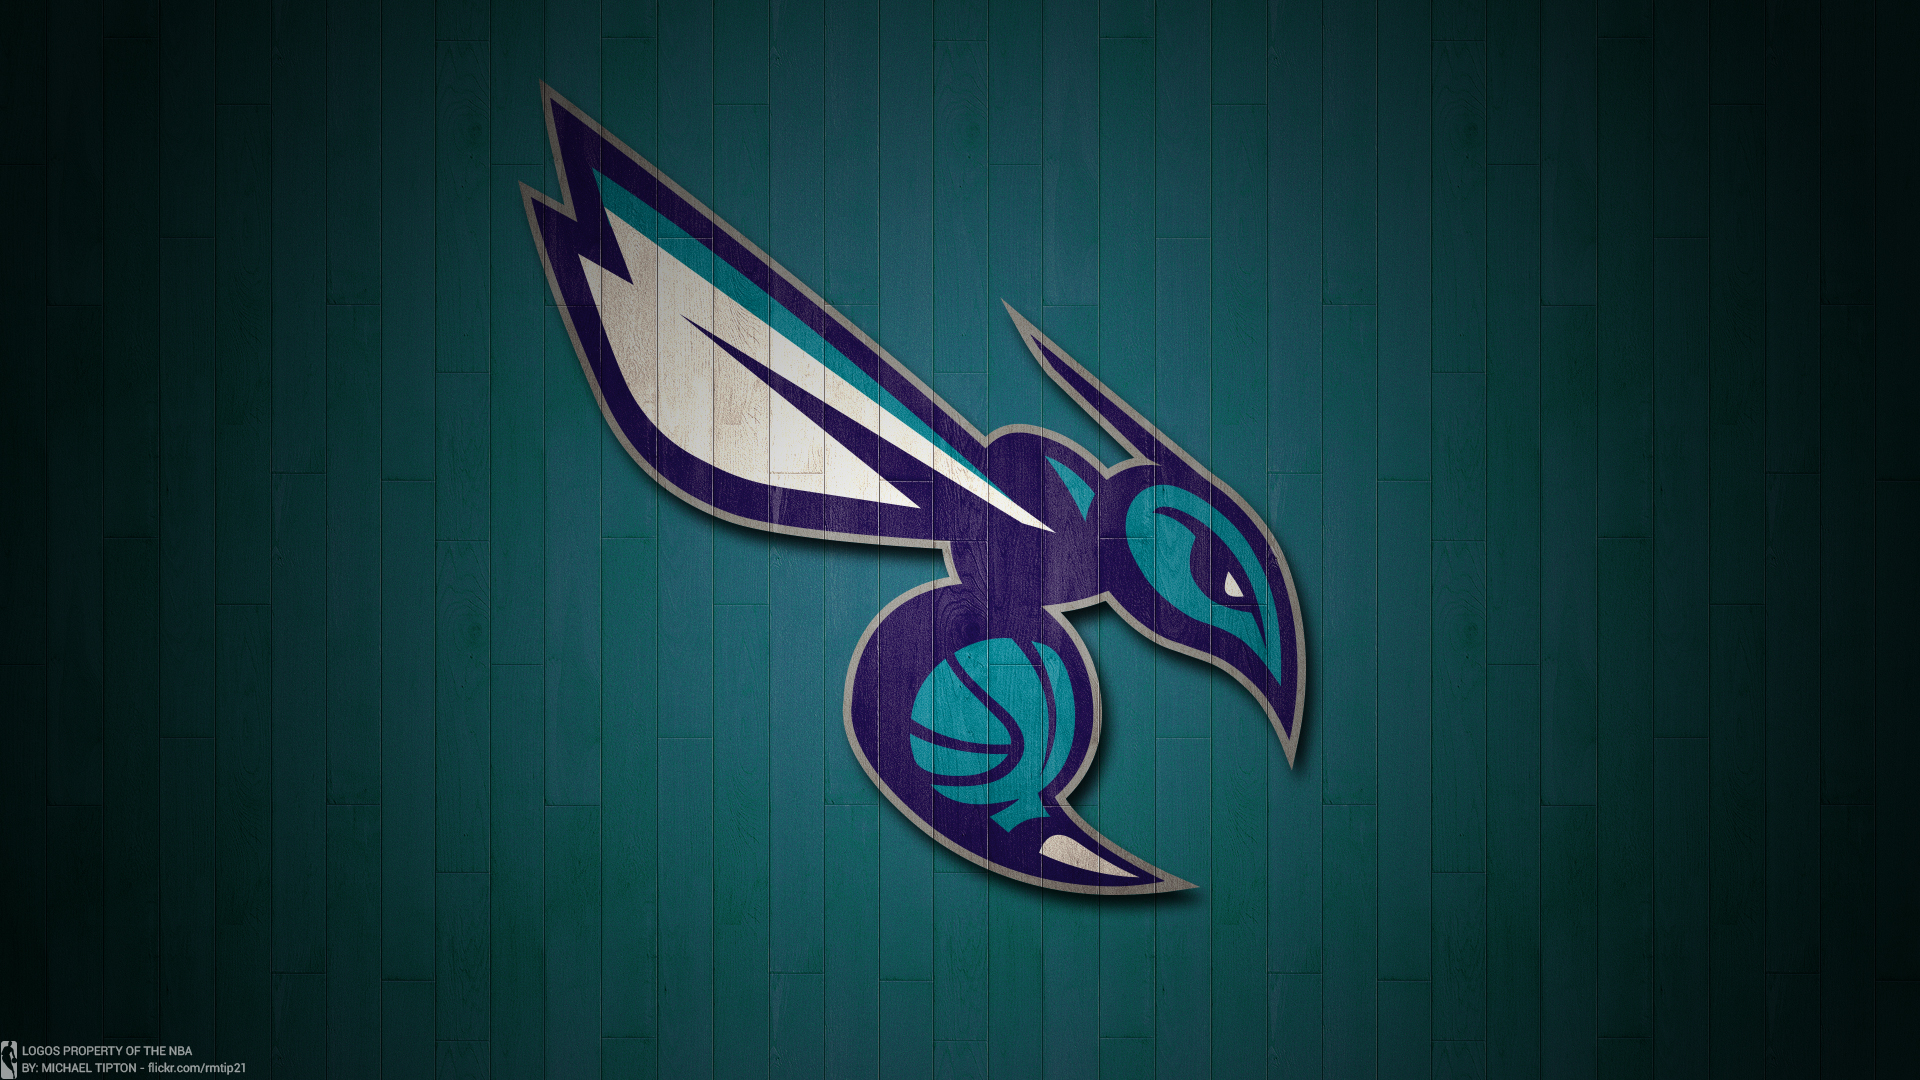 Charlotte Hornets Wallpapers ID920832